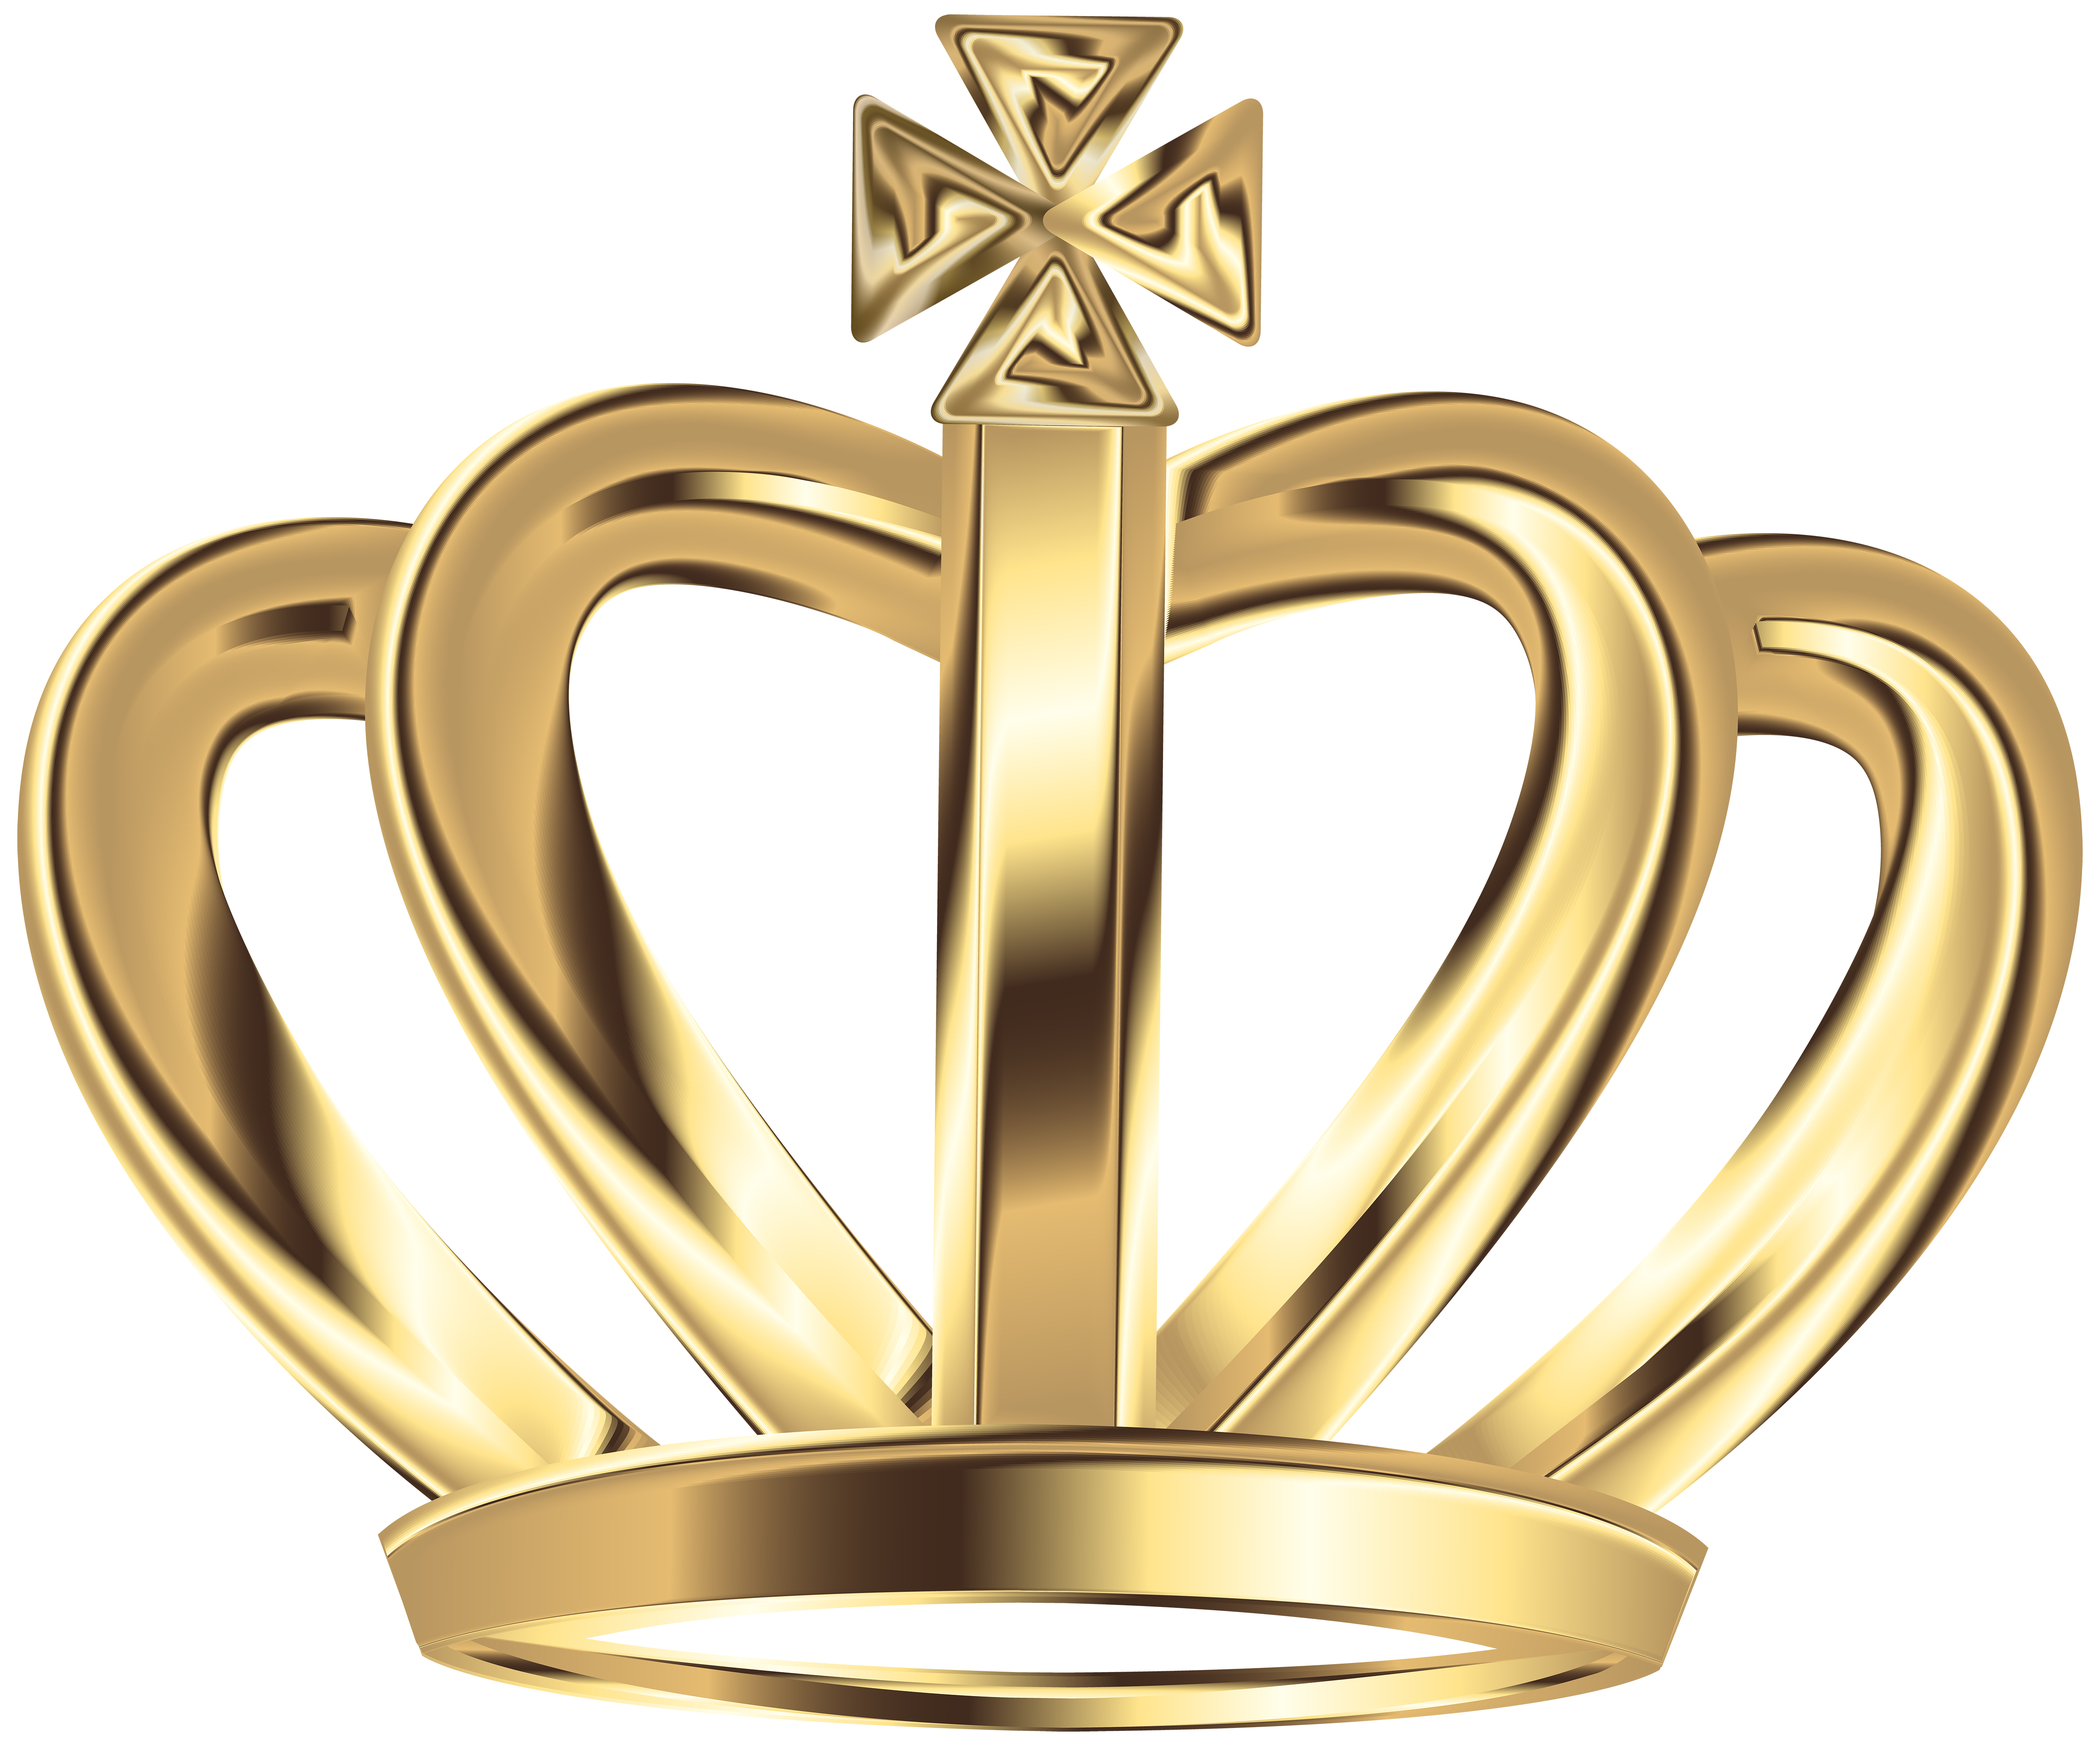 Magnificent Crown Clip Art Free 12 Line Drawing 14 Printable ... graphic black and white